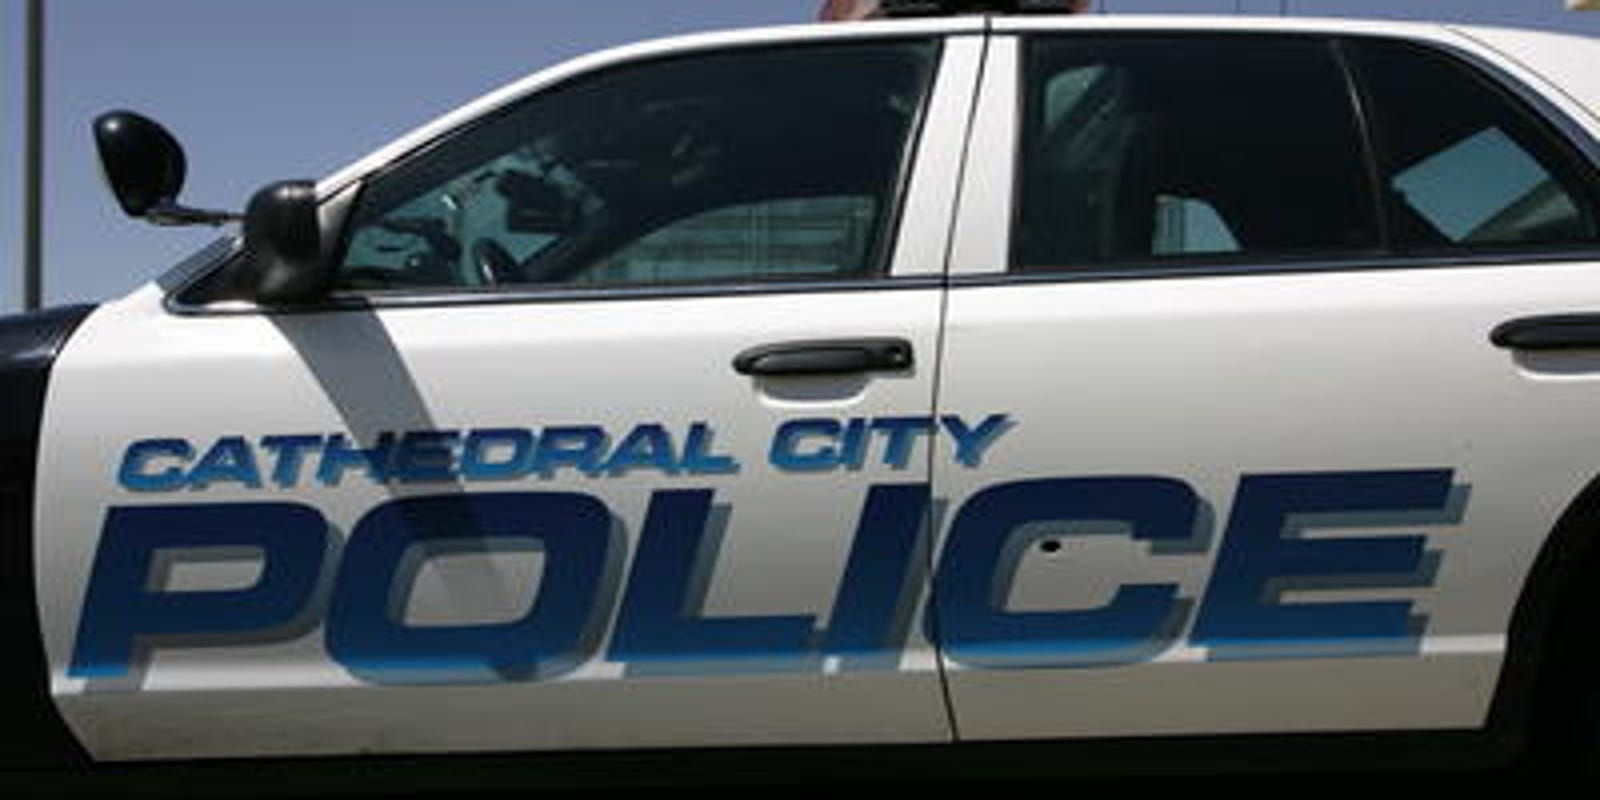 Octogenarian may have had medical condition before hitting bicyclist, another vehicle in Cathedral City